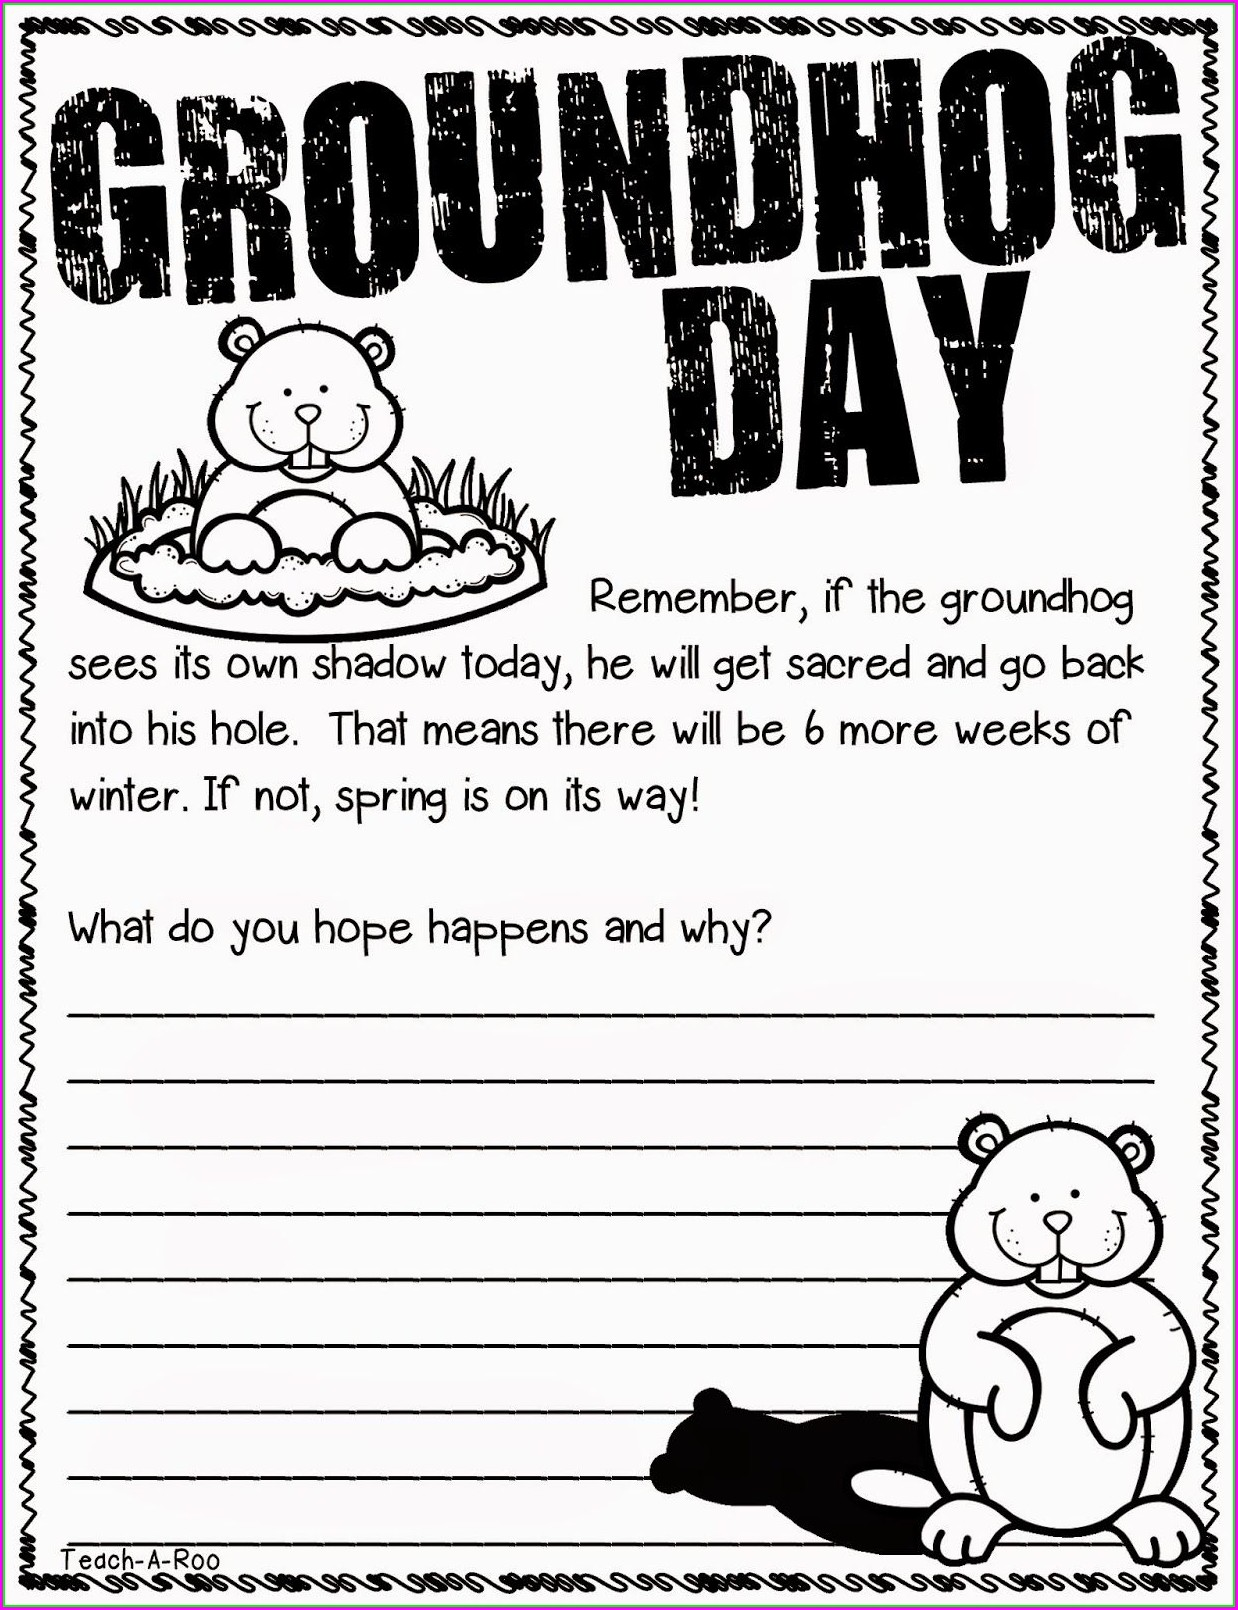 Groundhog Day Lesson Plans 2nd Grade